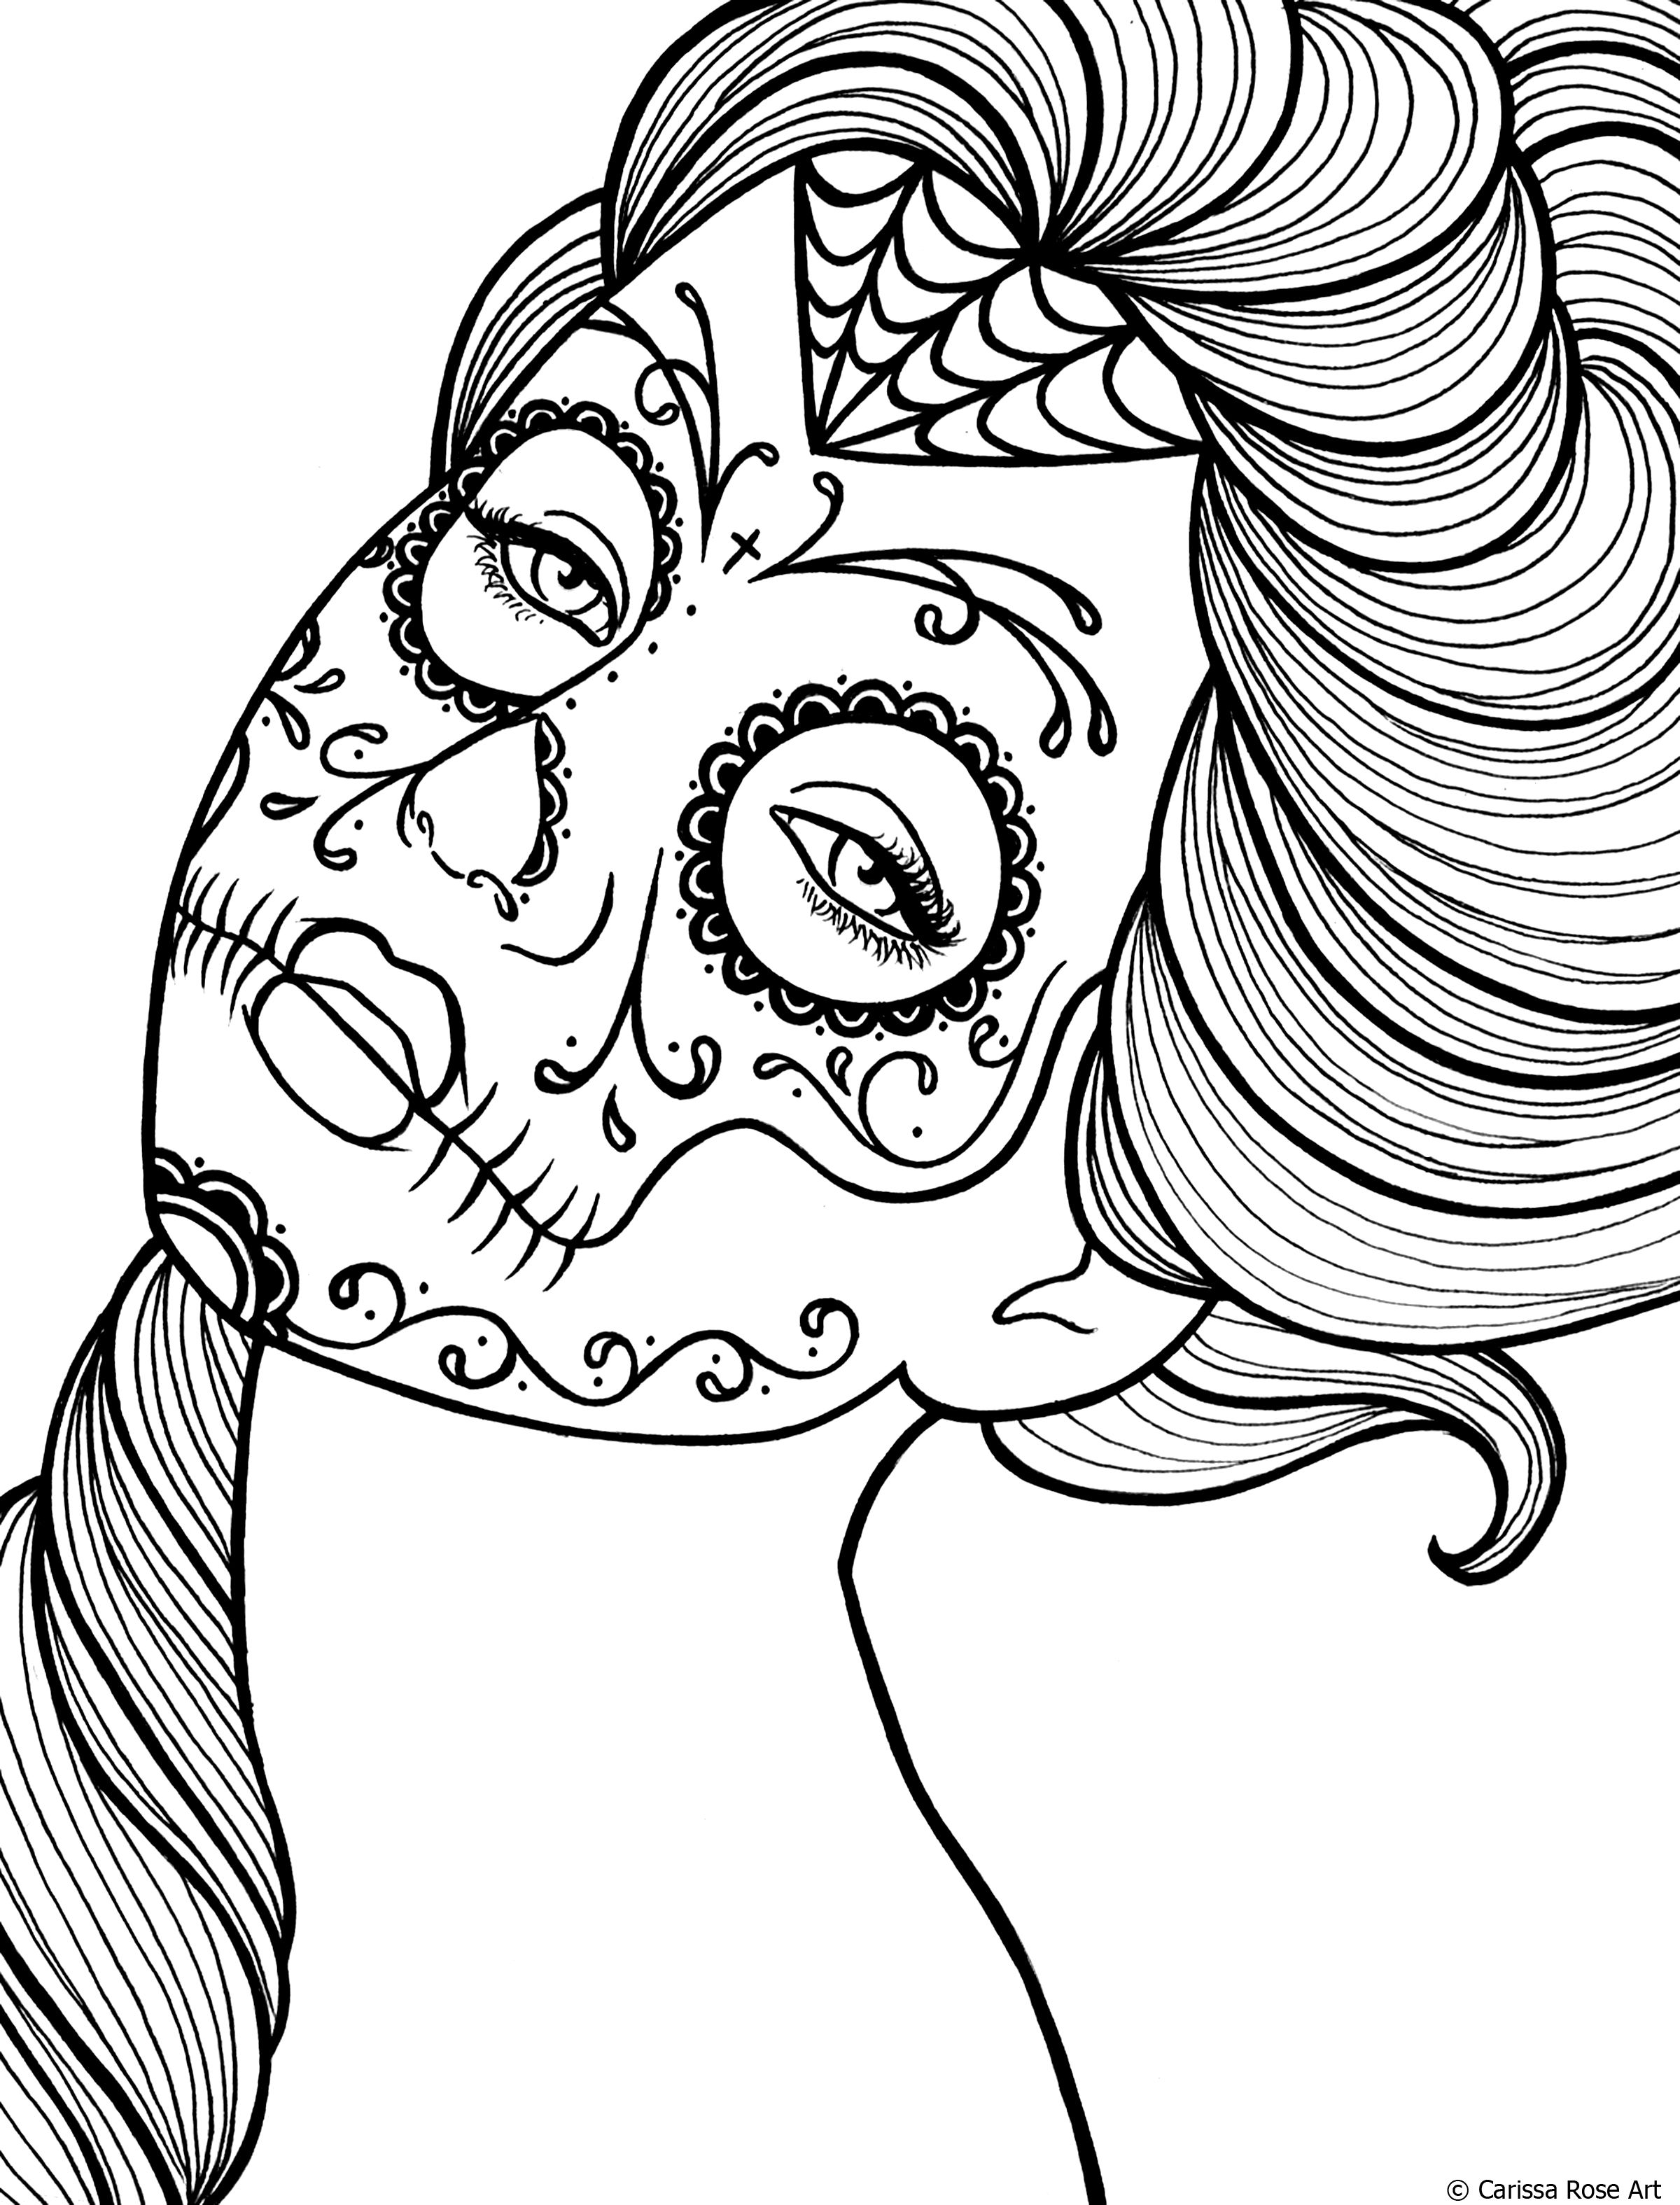 Coloring pages girly - Dcraxalki Grateful Dead Coloring Pages Coloring Home On Grateful Dead Coloring Pages Free